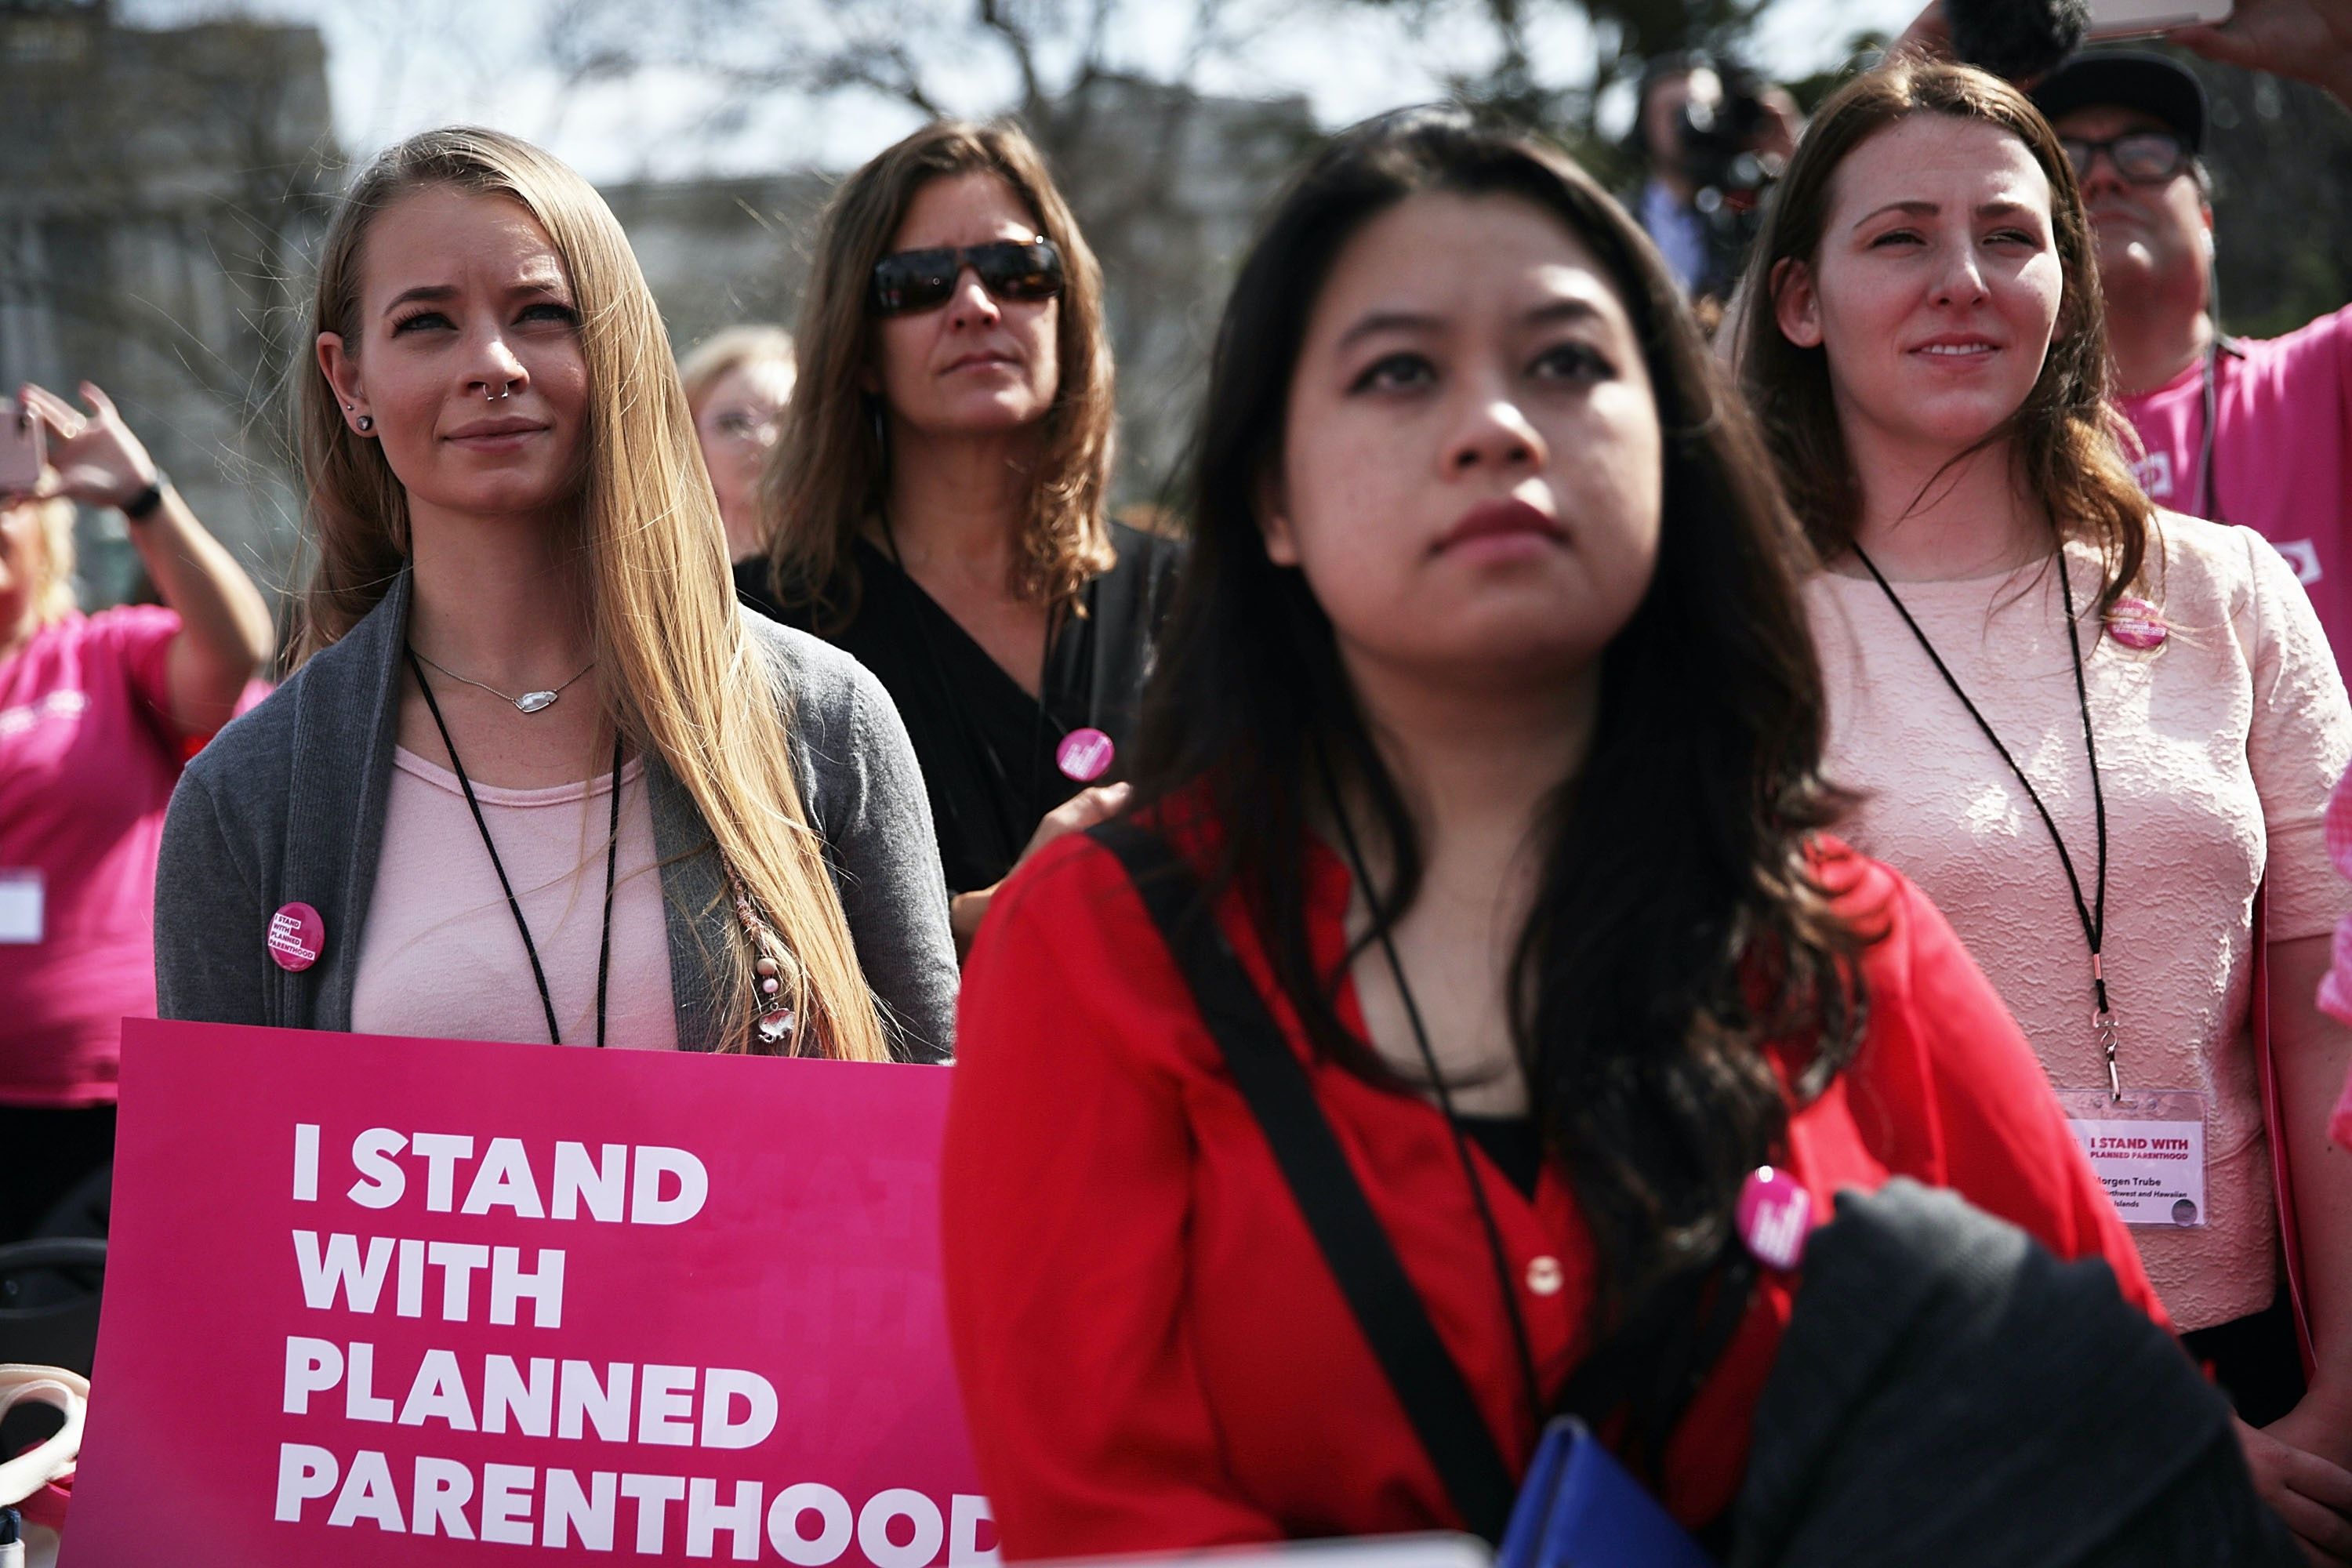 Federal Judge Defers Ruling on Missouri Abortion Rules